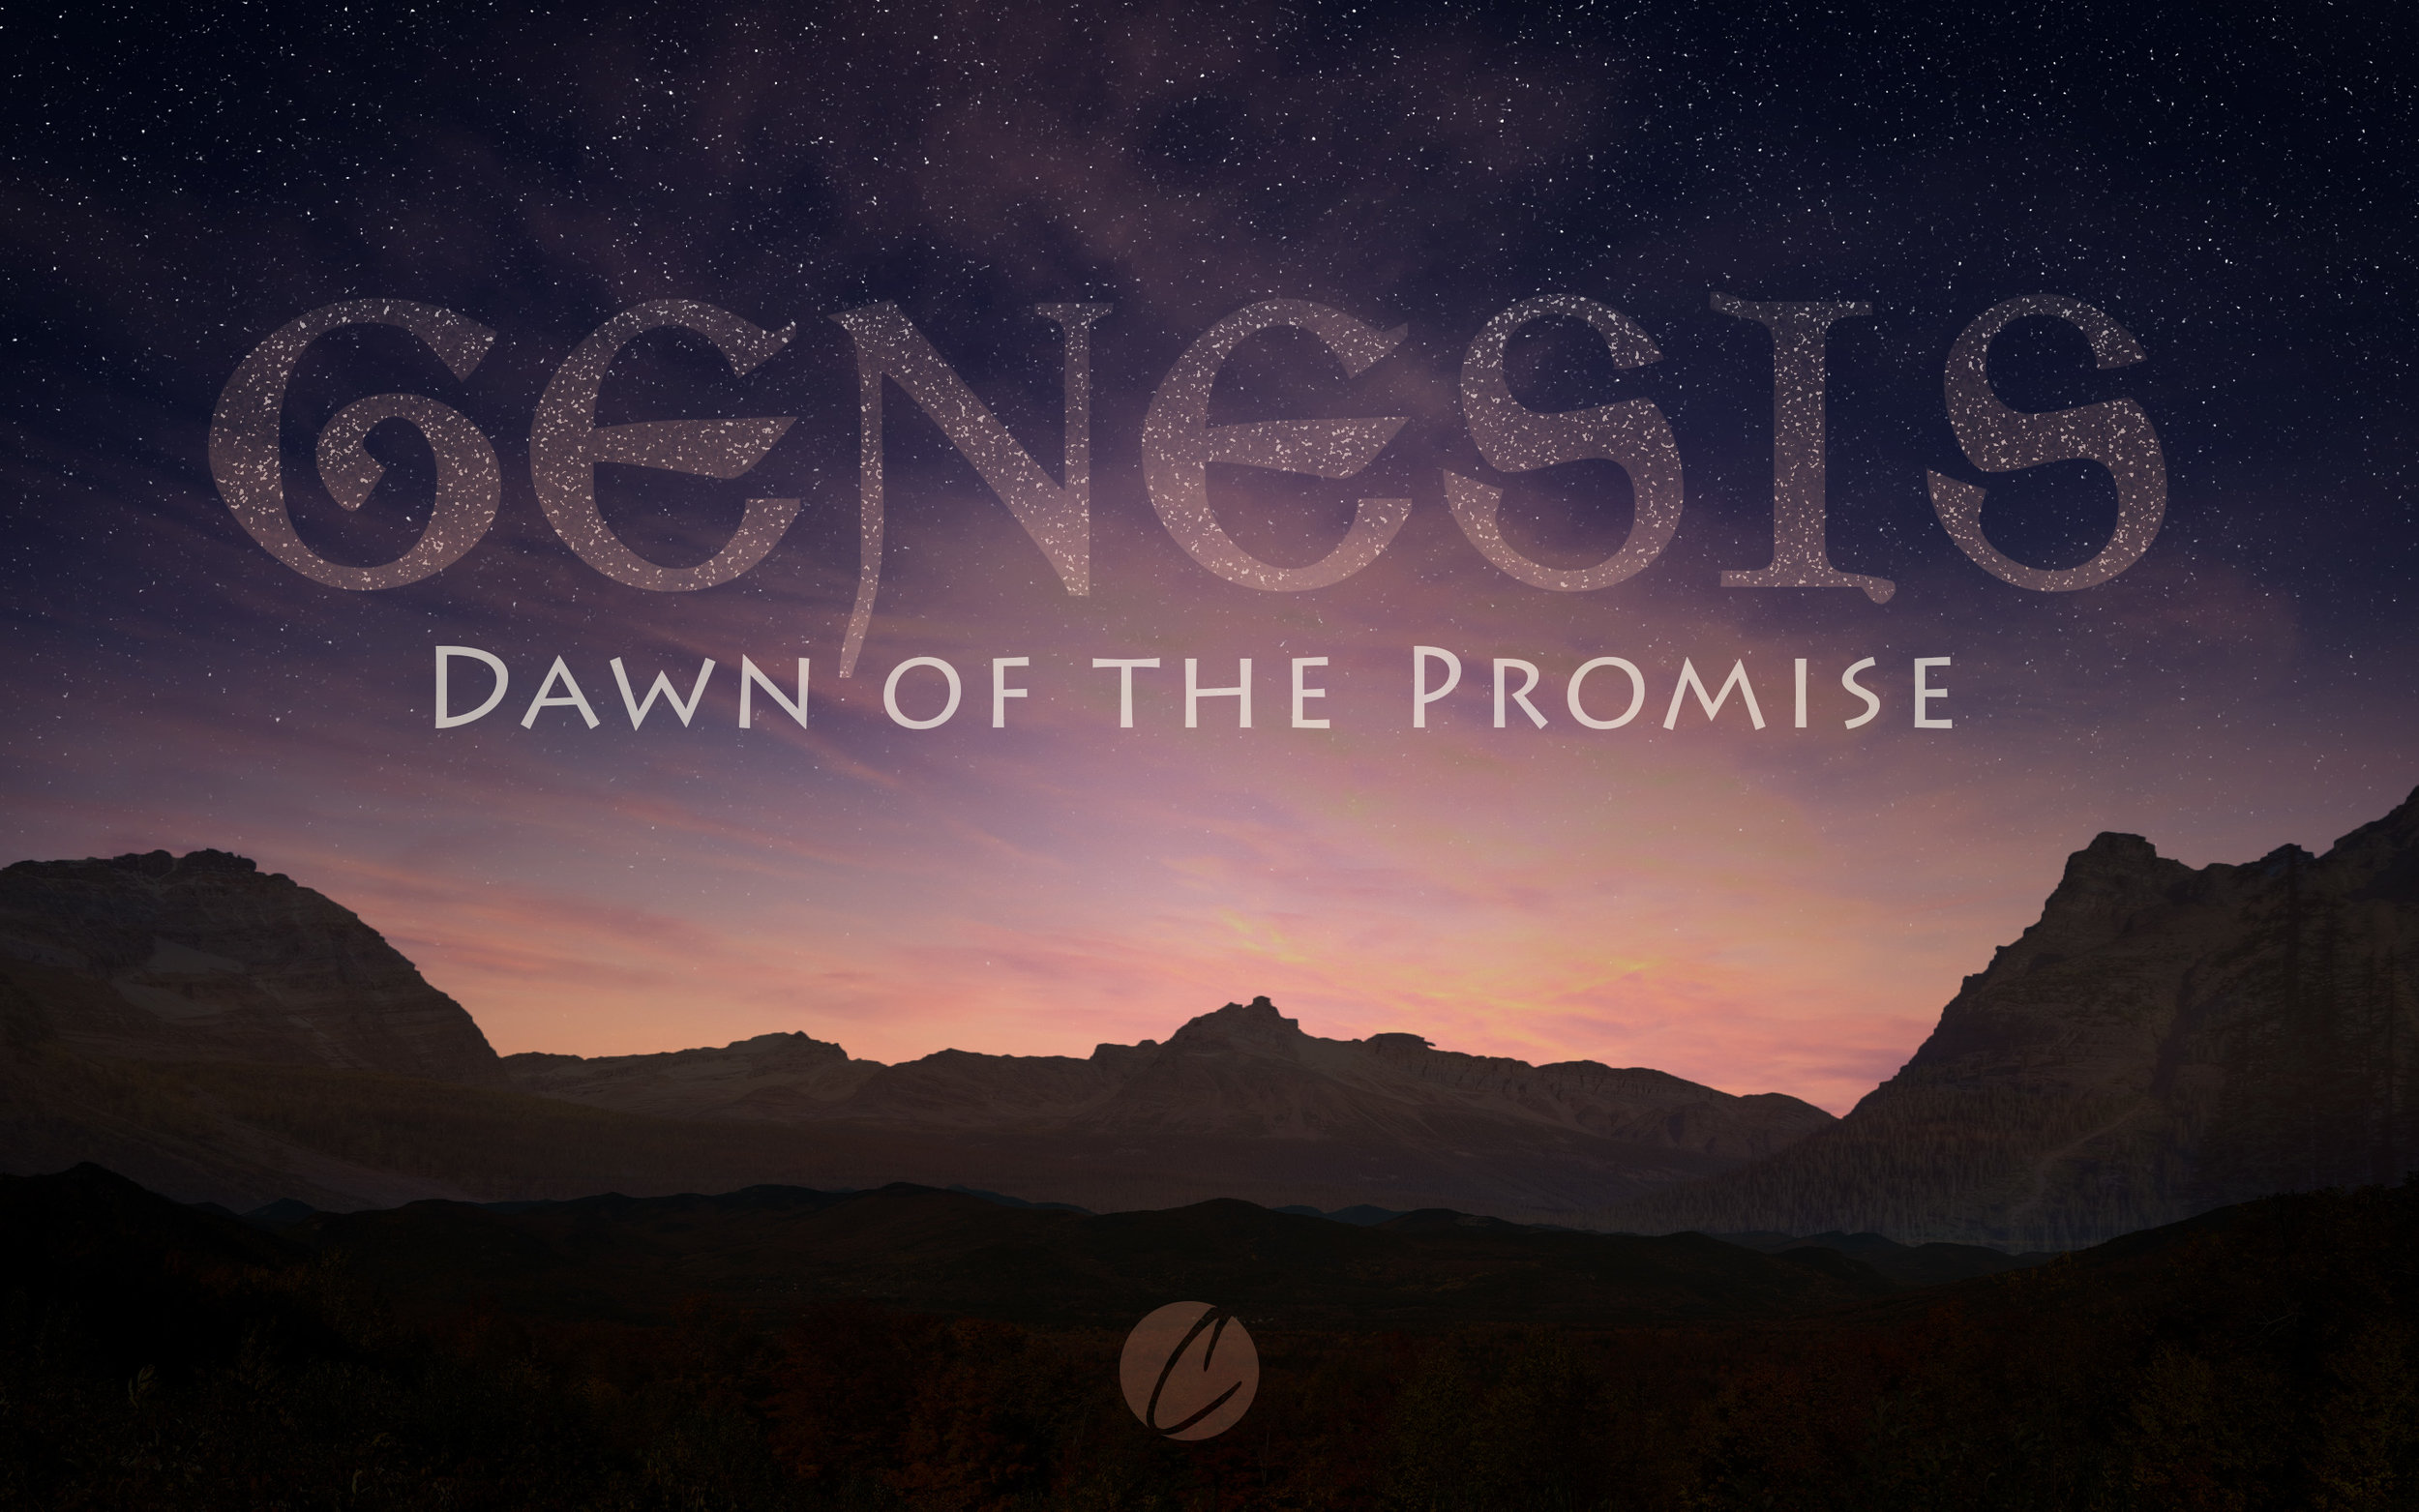 Genesis: Dawn of the Promise - Right now we're walking through the foundational truths of Genesis 1-2 and tracing how they unfold through the rest of the Bible. Later this year we hope to start with Chapter 3 and walk through the stories of Genesis.